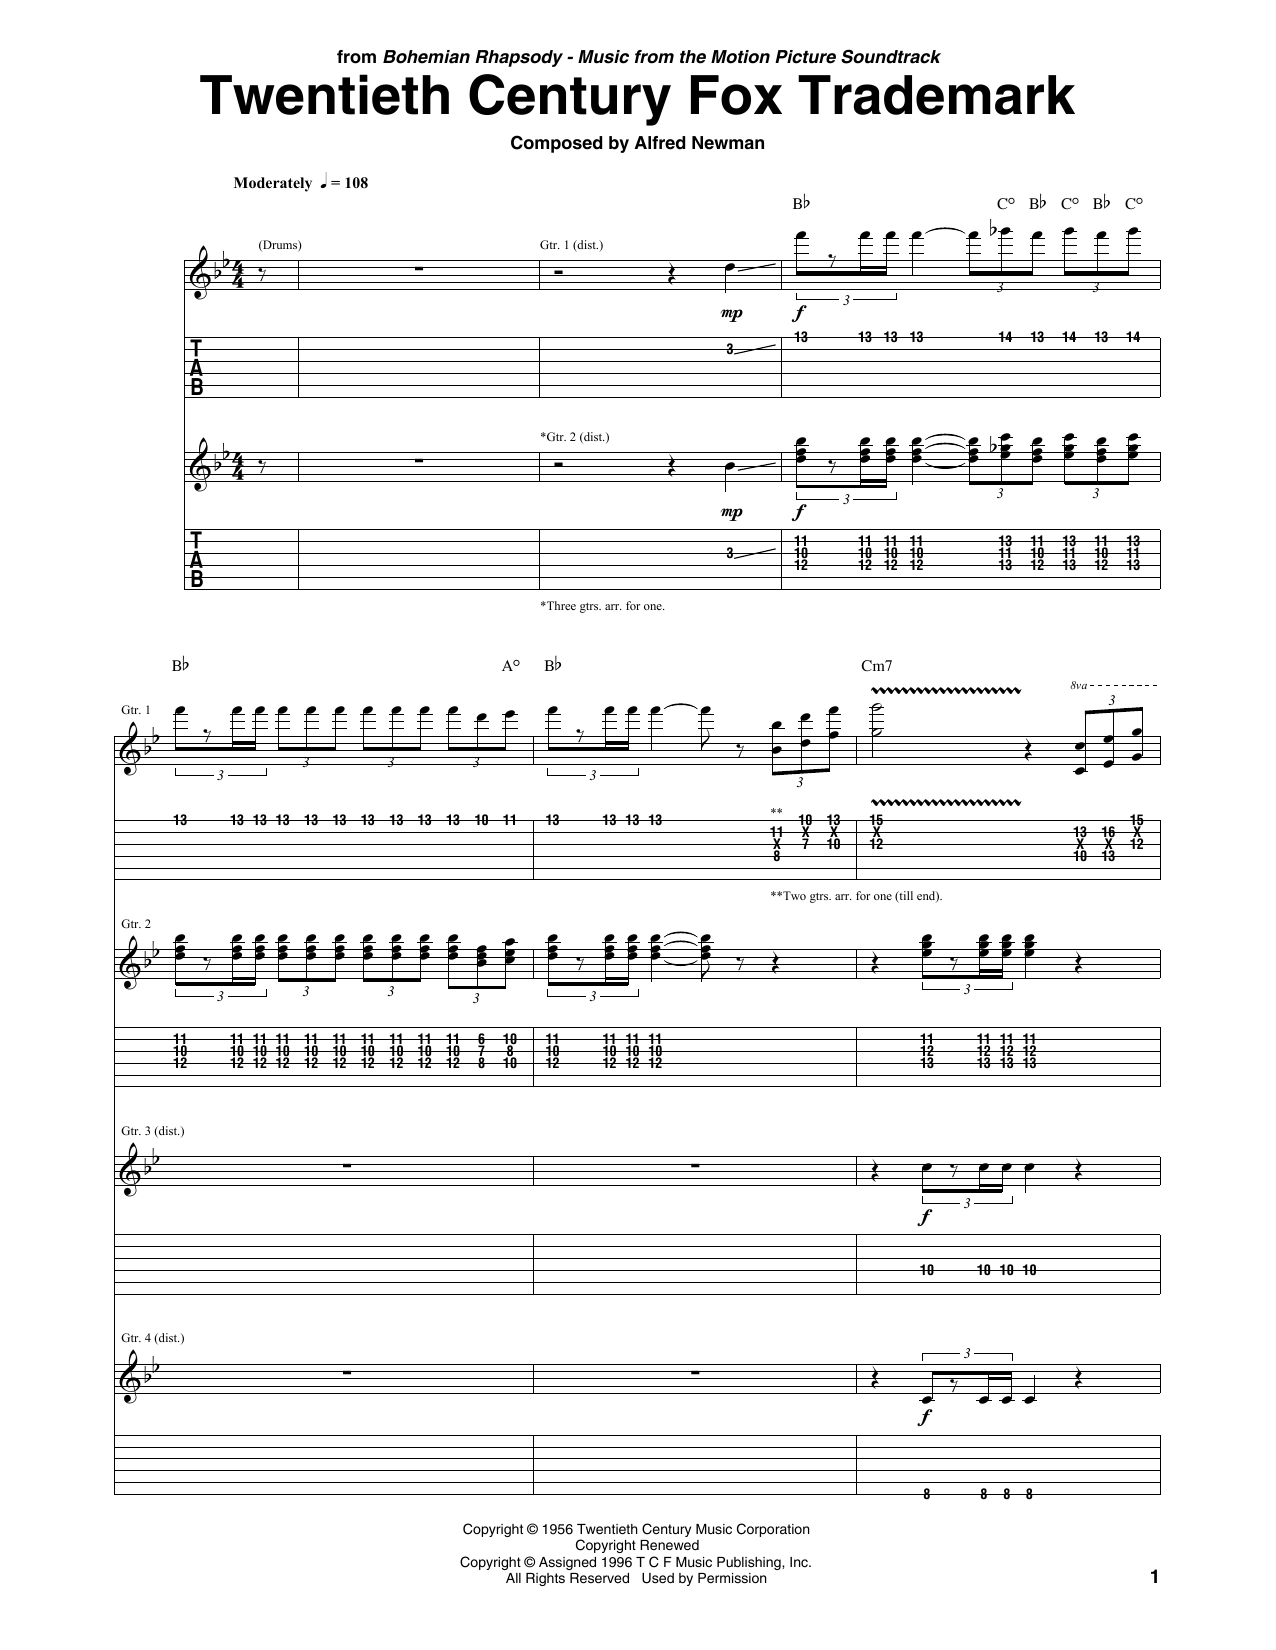 Queen Twentieth Century Fox Trademark sheet music notes and chords. Download Printable PDF.